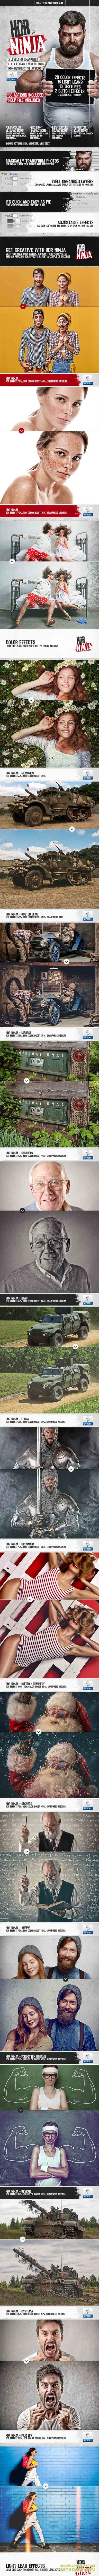 GraphicRiver - HDR Ninja - 50 Photoshop Actions 20669360